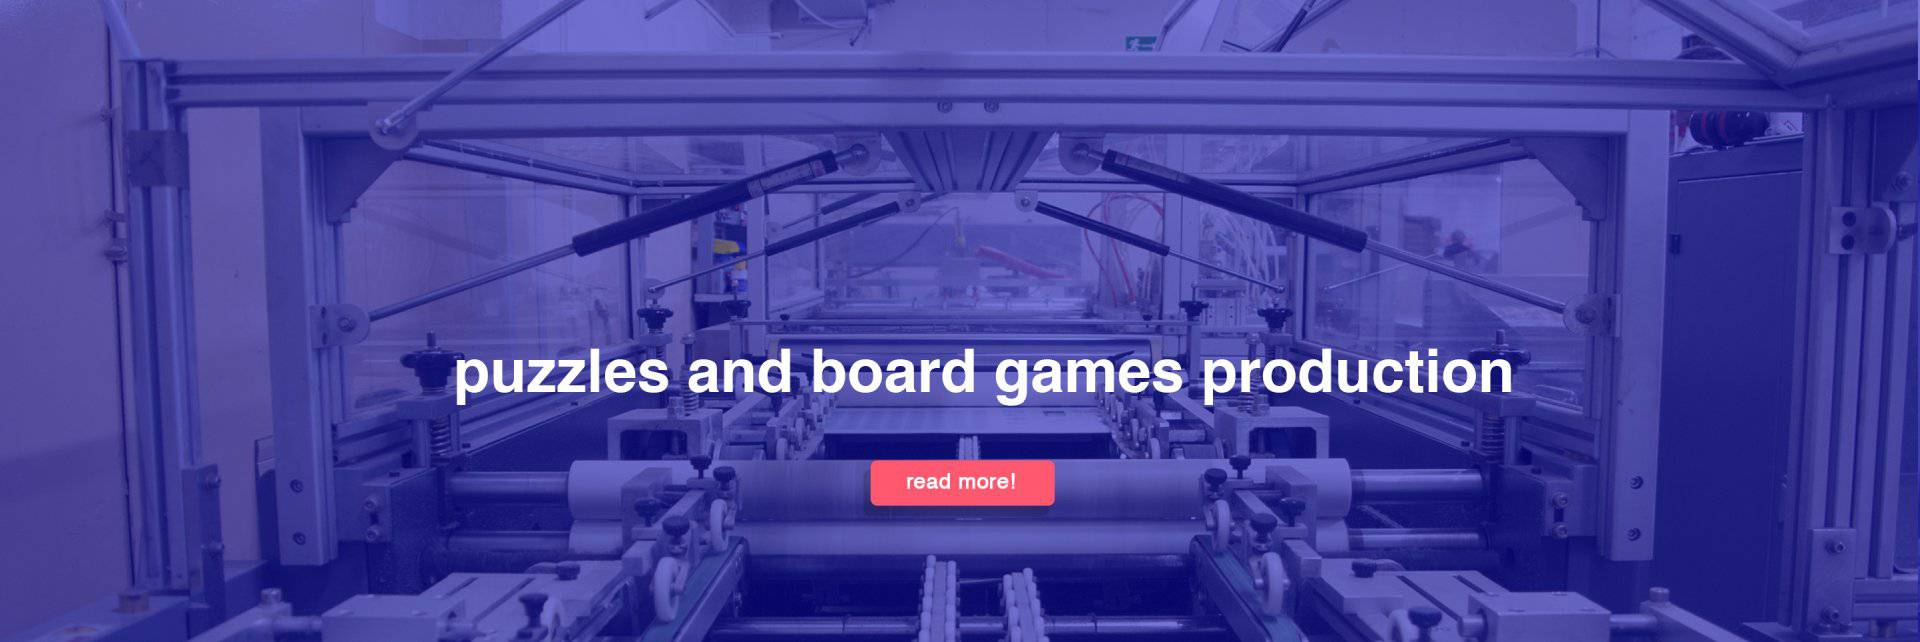 board games production